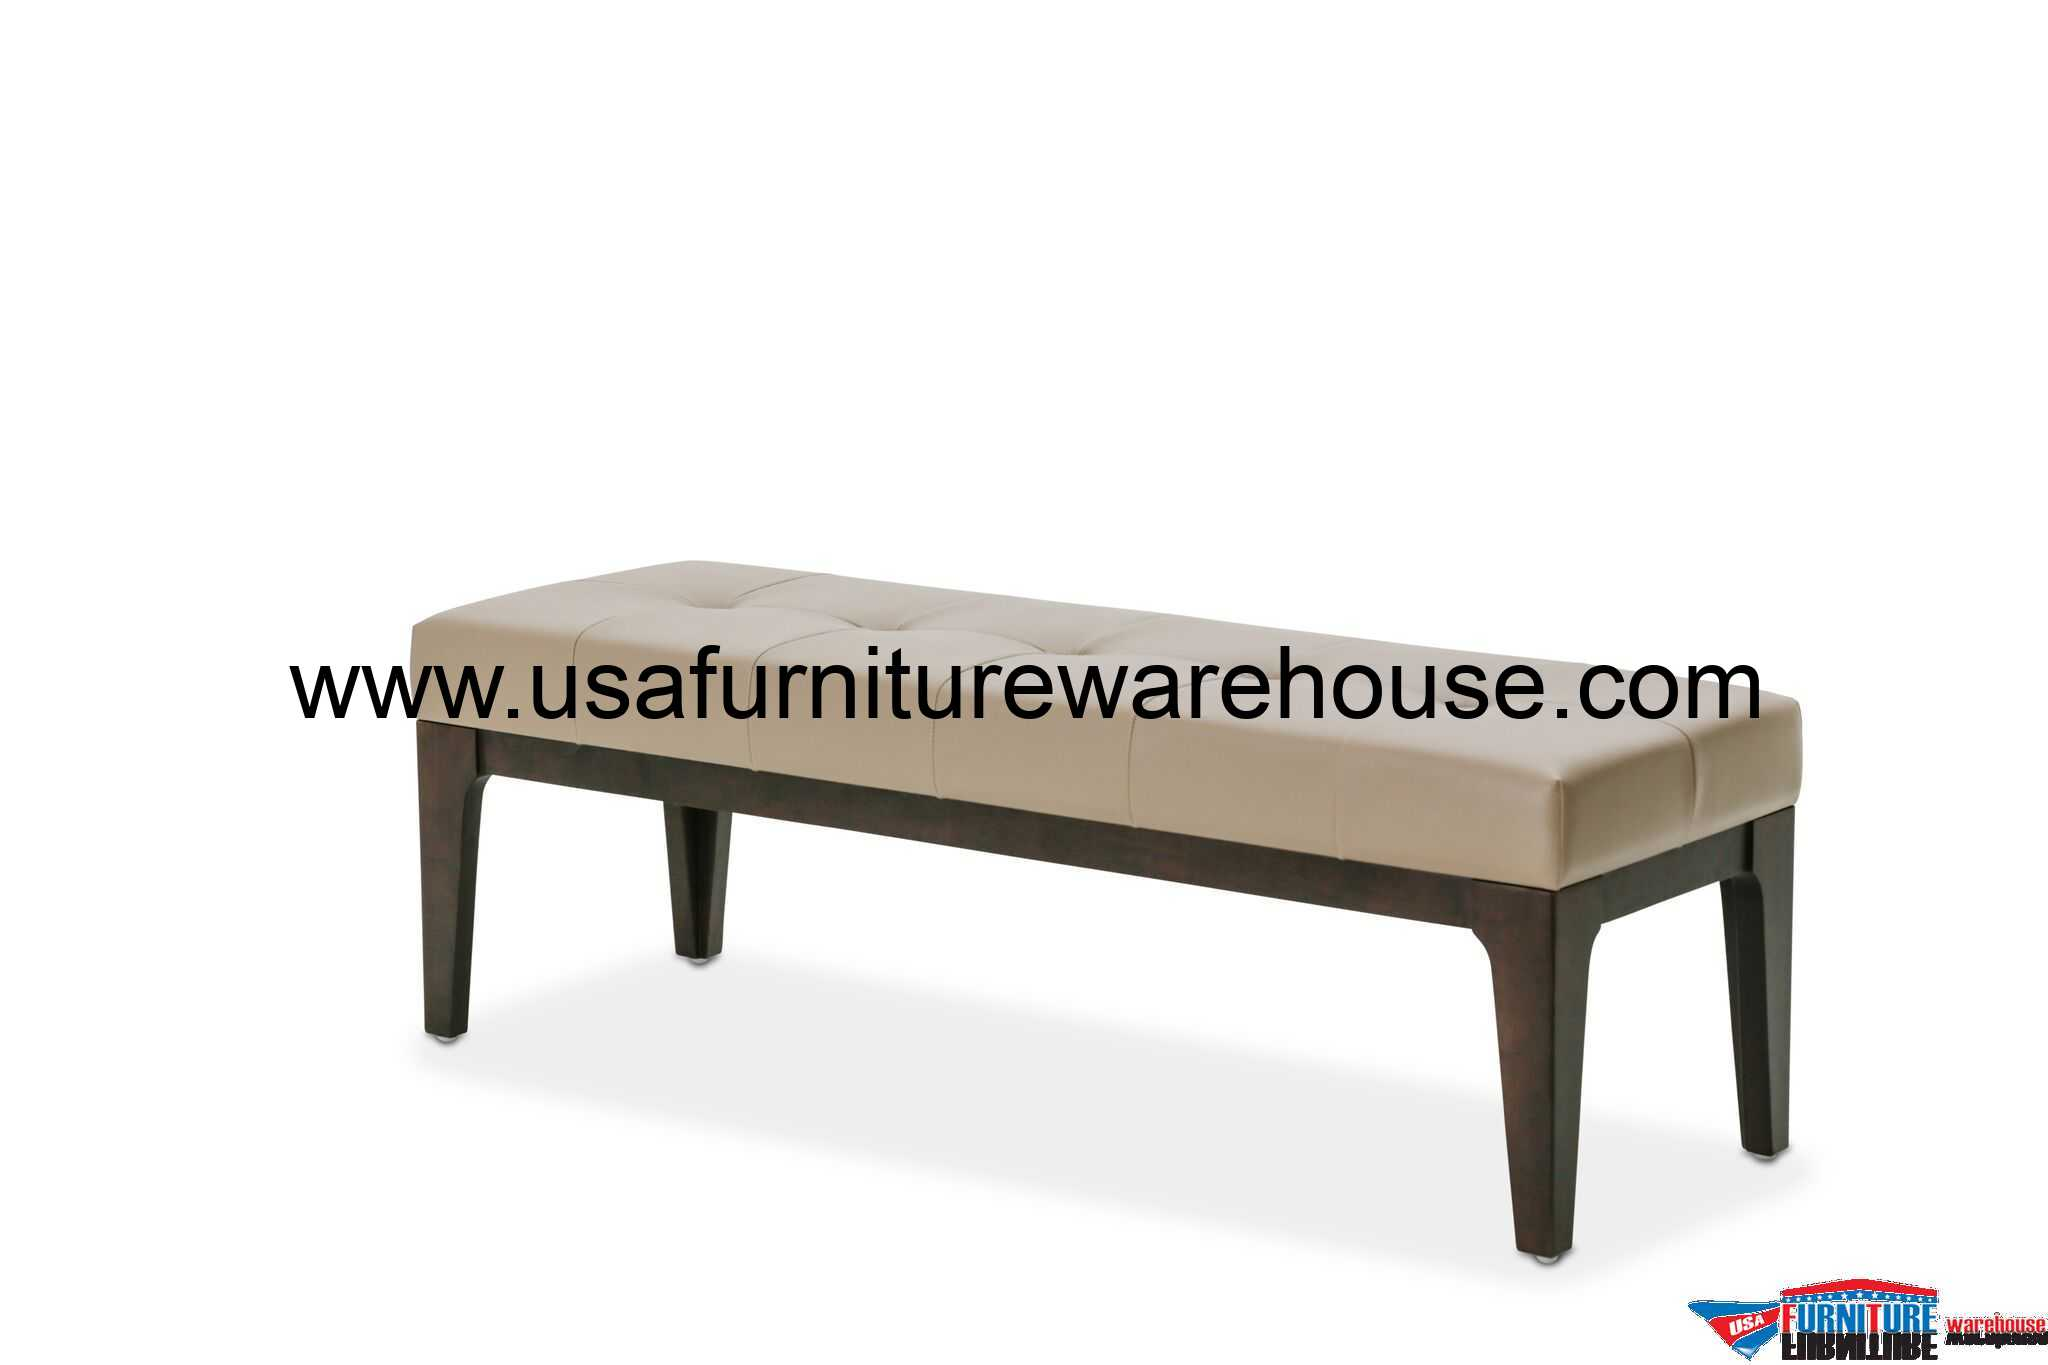 Aico 21 cosmopolitan taupe bed bench Bed benches